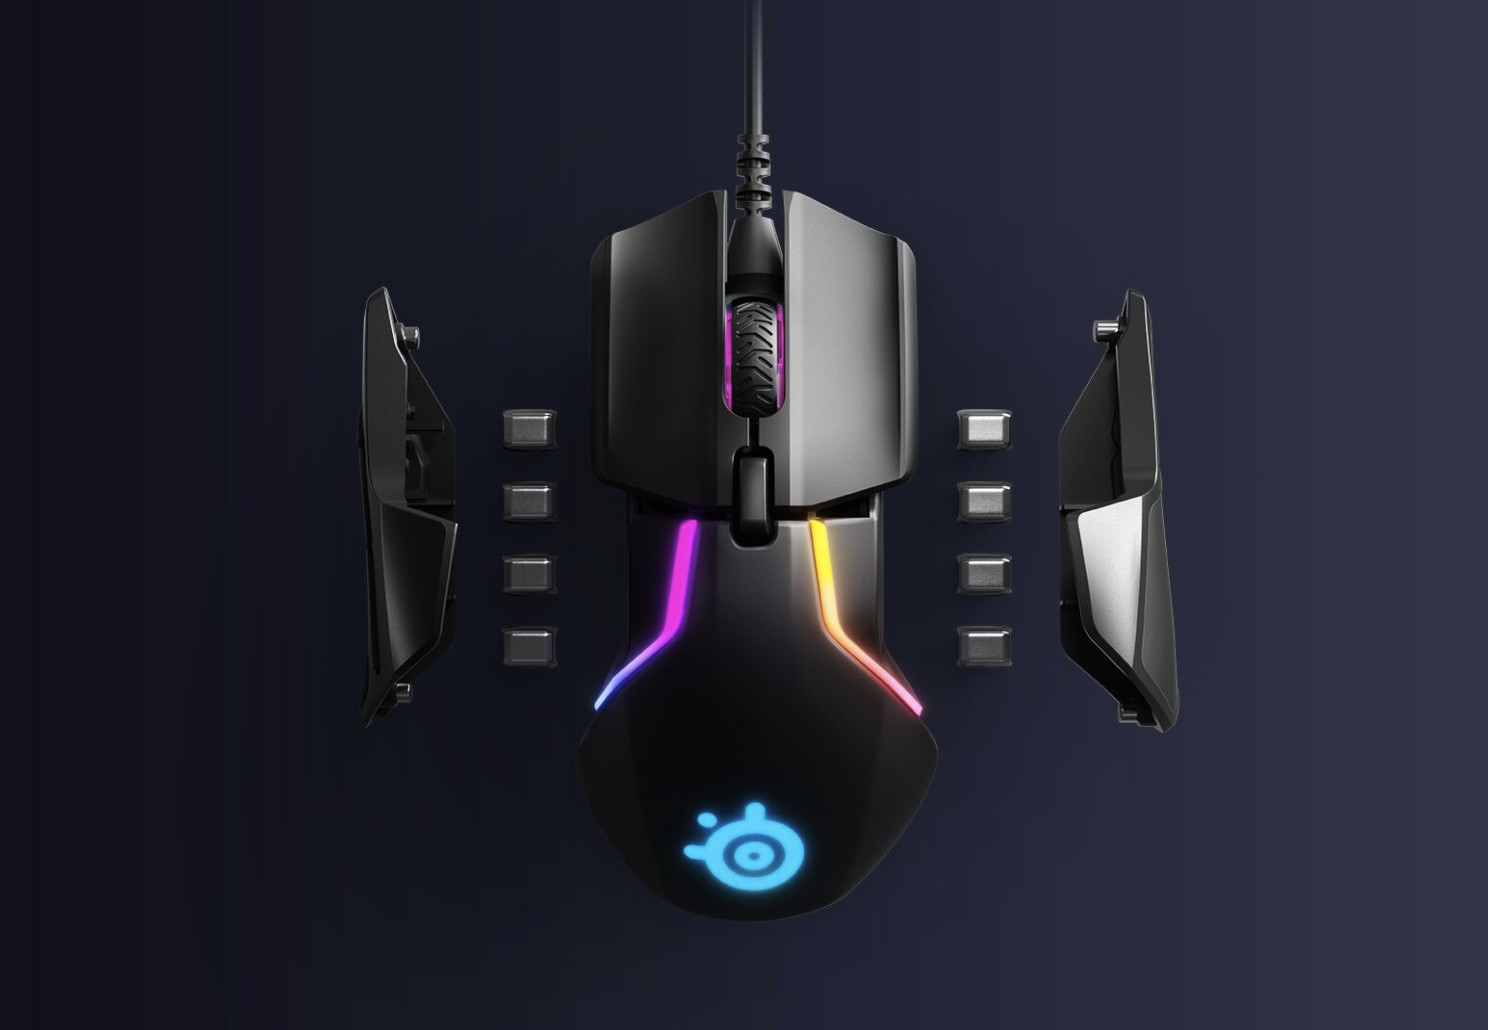 SteelSeries Launches New TrueMove3+ dual sensor setup For Competitive Gamers